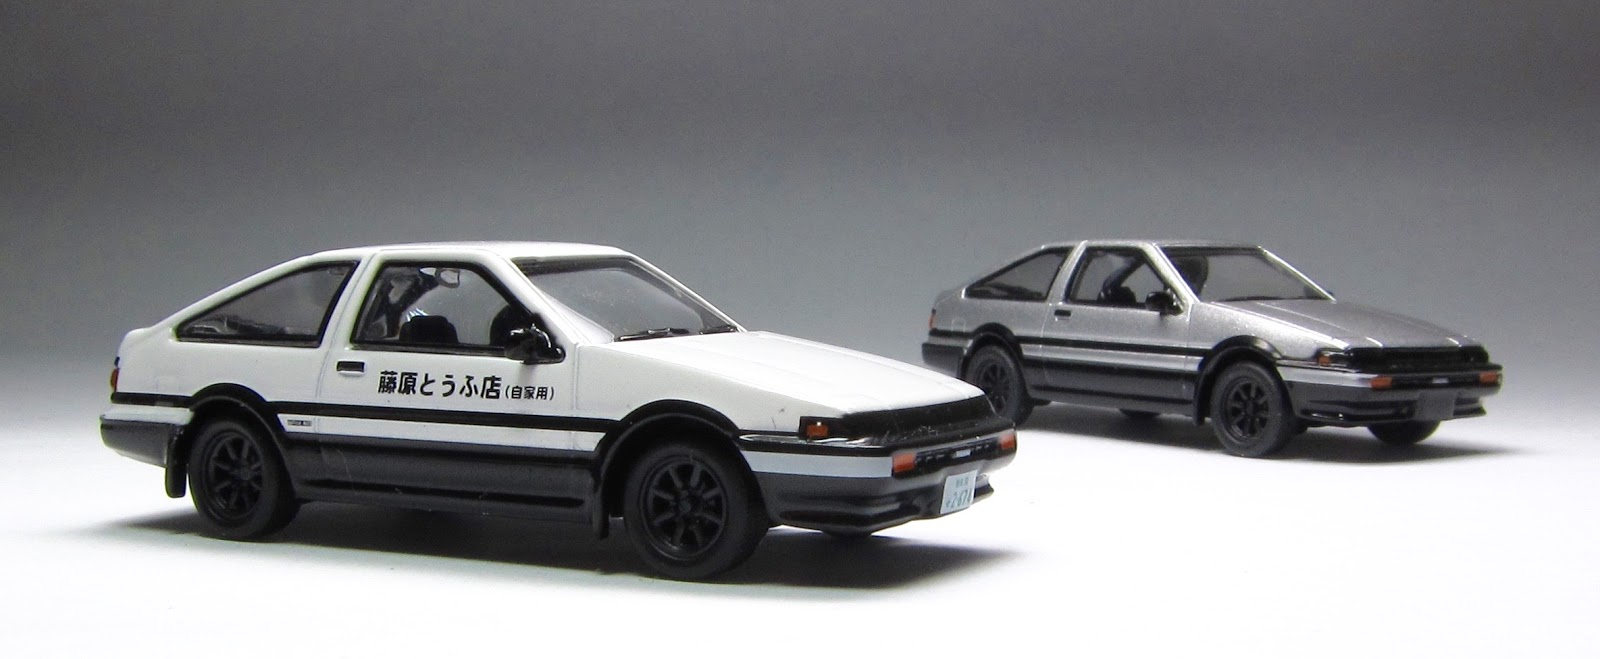 first look kyosho initial d toyota ae86 sprinter trueno thelamleygroup. Black Bedroom Furniture Sets. Home Design Ideas